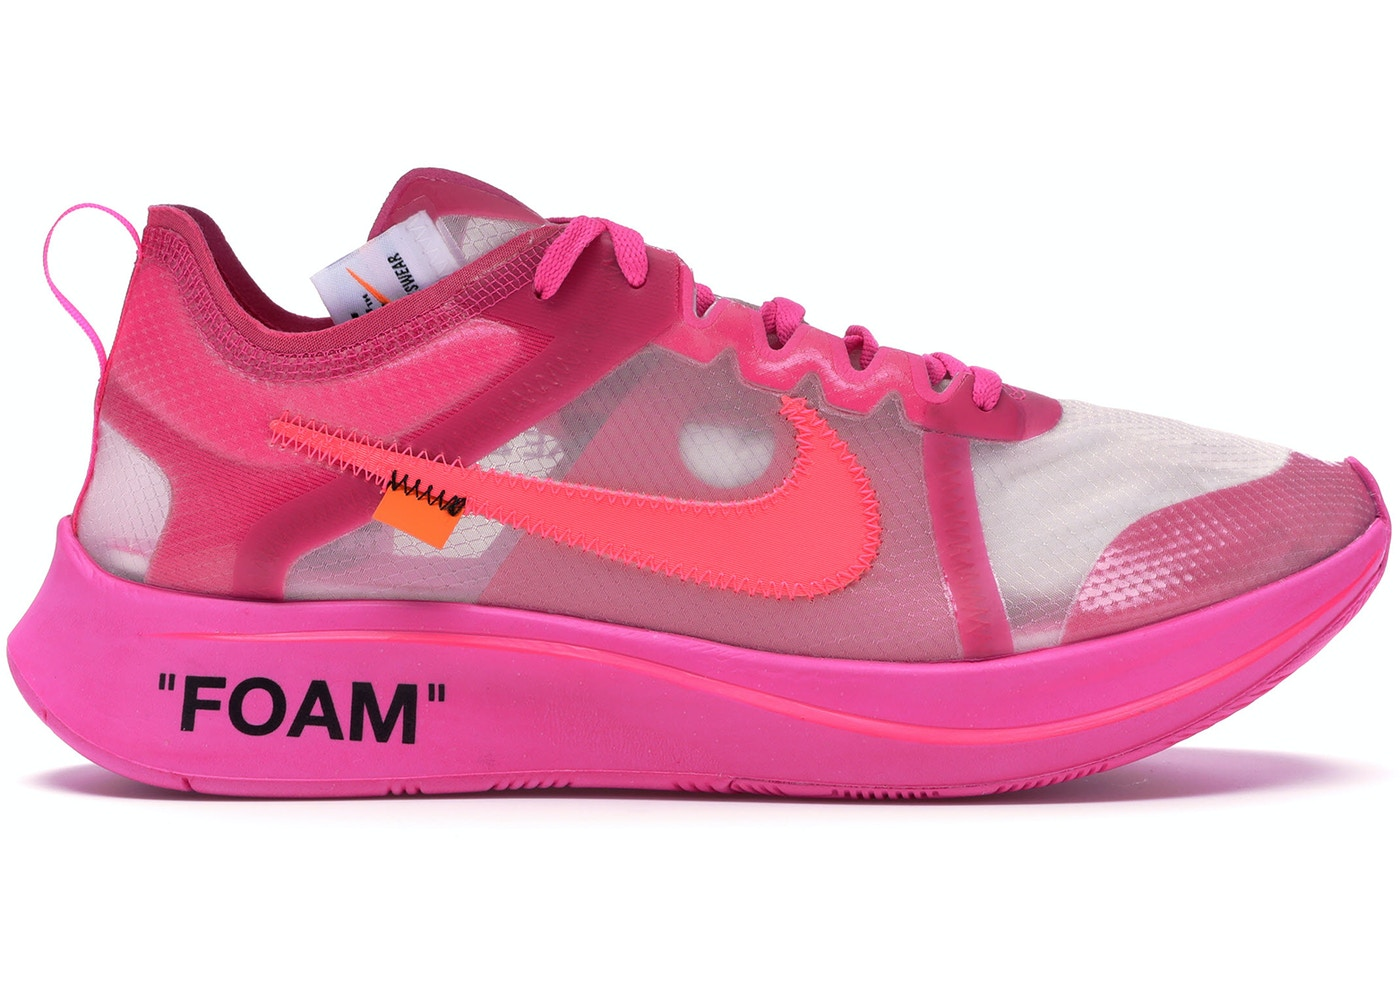 f77699a08138 Nike Zoom Fly Off-White Pink - AJ4588-600